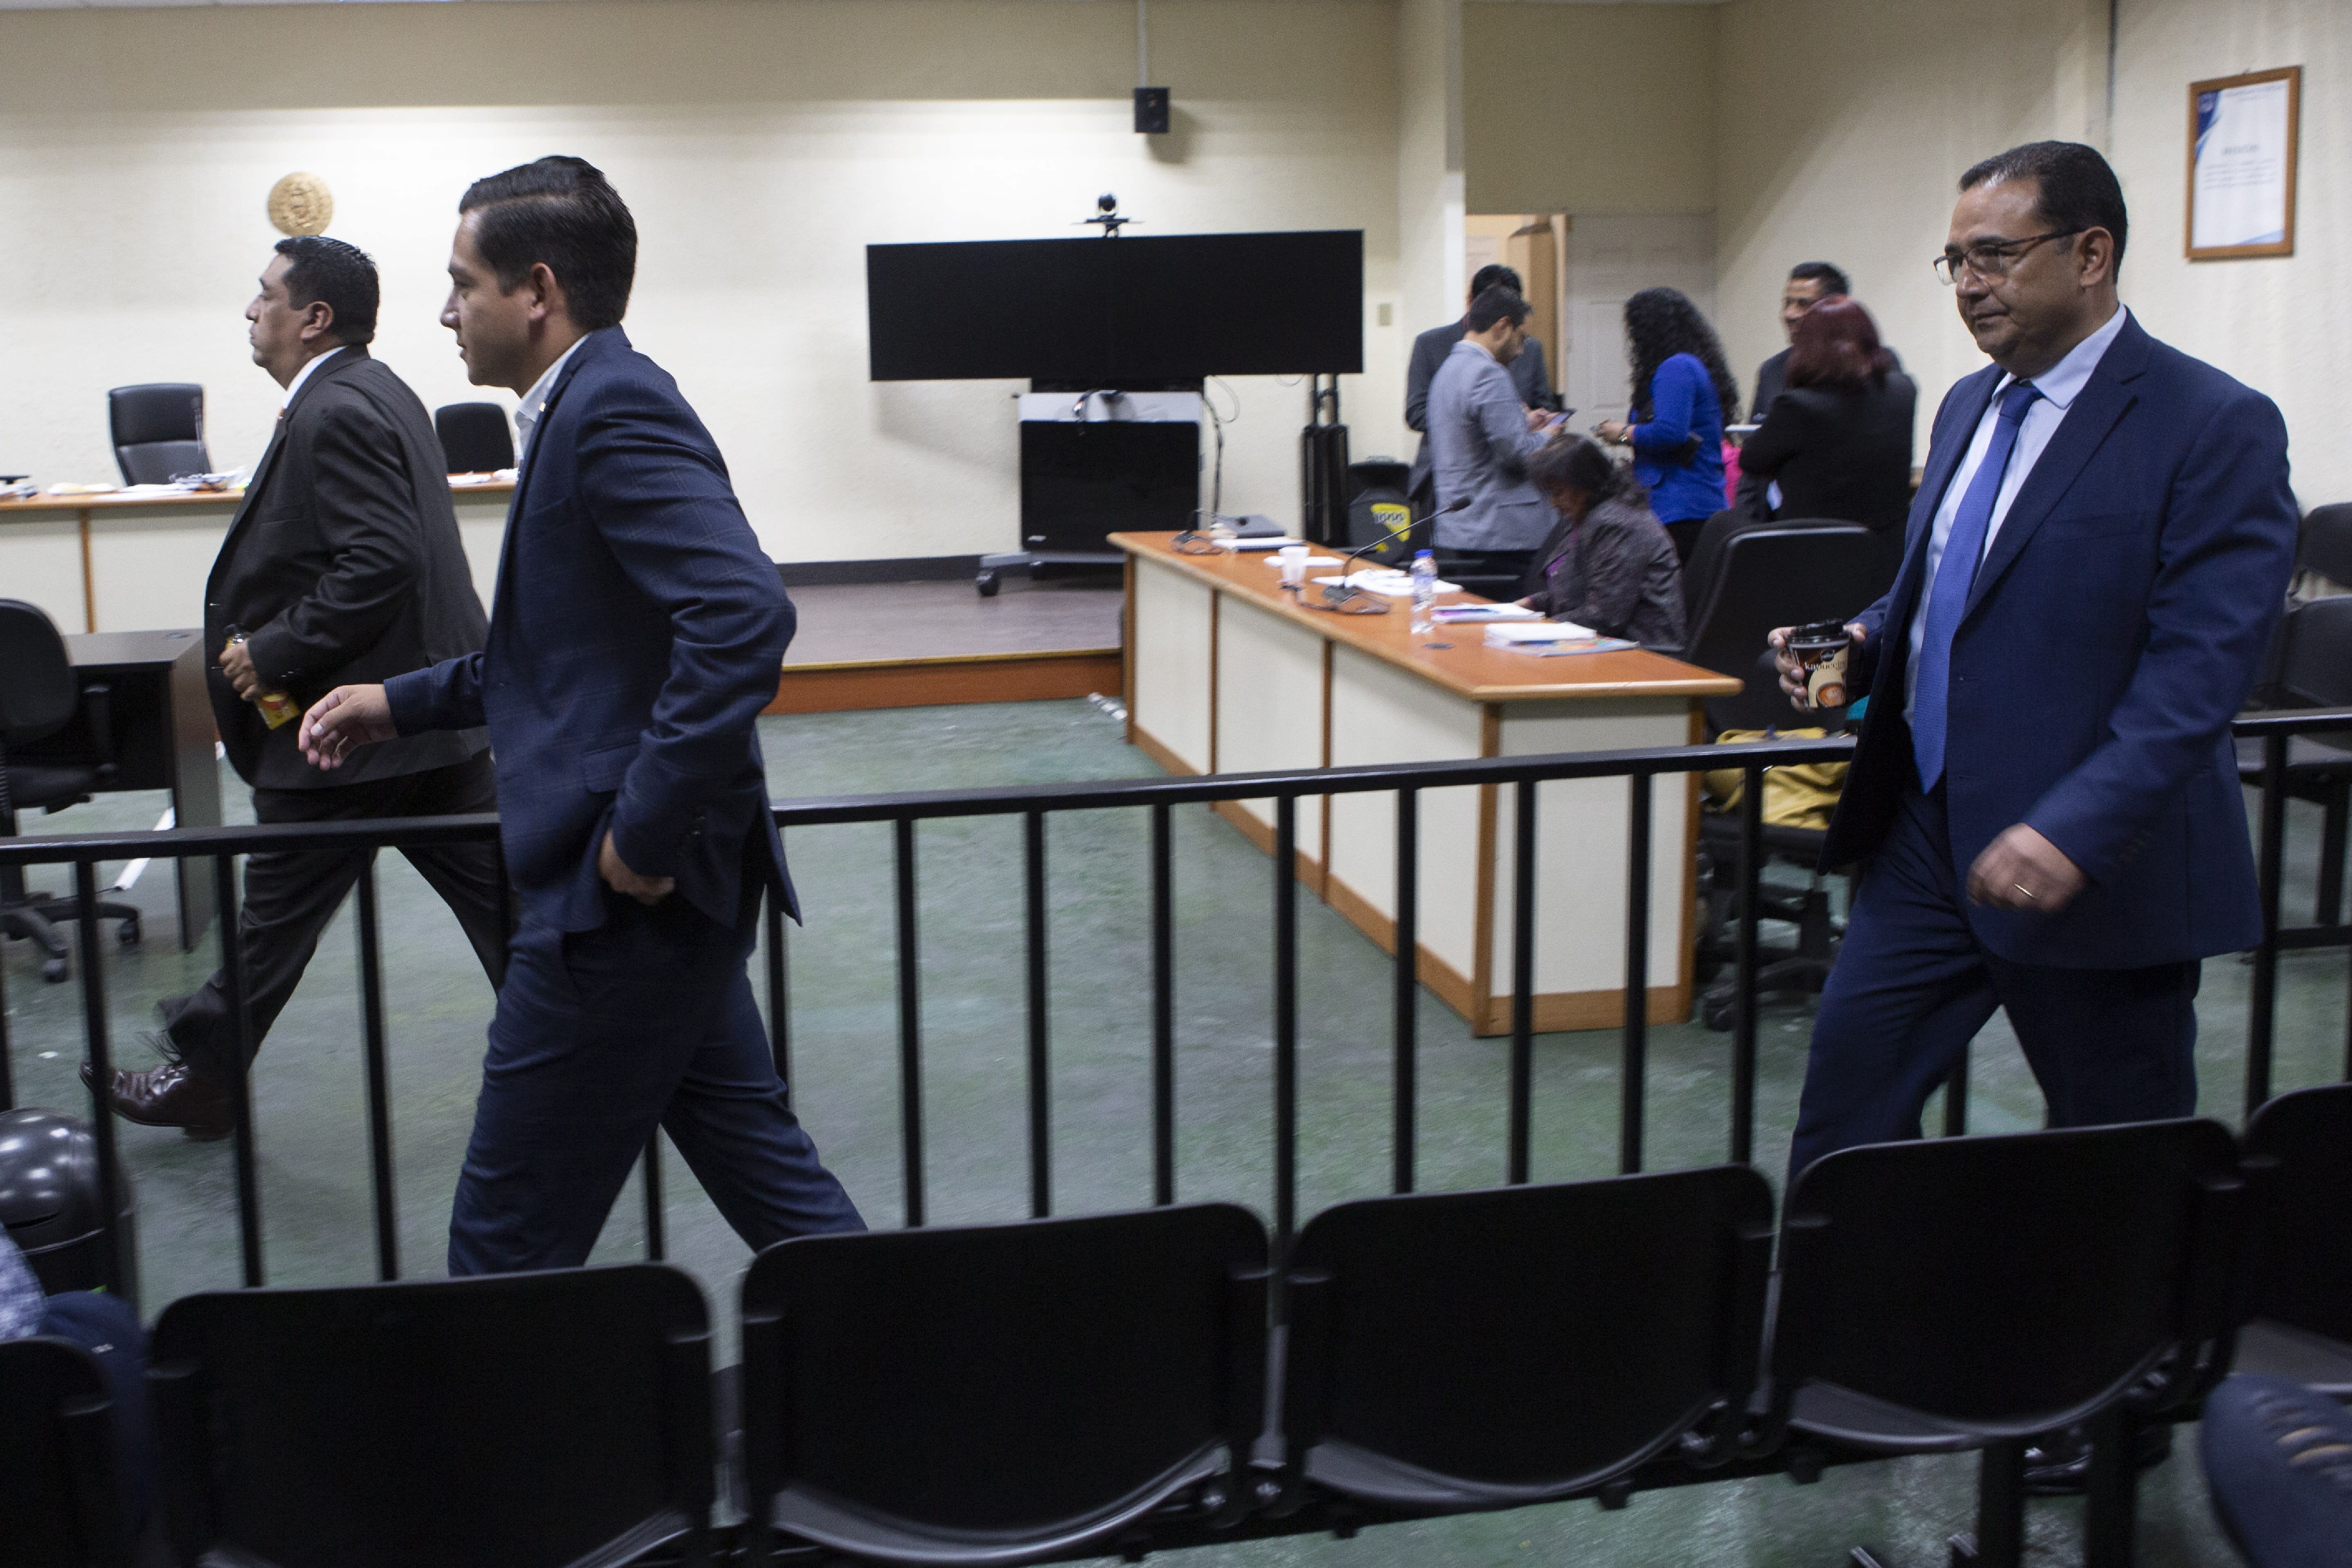 Jose Manuel Morales Marroquin, son of Guatemalan President Jimmy Morales, front left, and his uncle Samuel Everardo Morales, the president's brother, enters court in Guatemala City, Monday, Aug. 19, 2019. The court acquitted the pair who were singled out for a corruption case in 2013. (AP Photo/Moises Castillo)